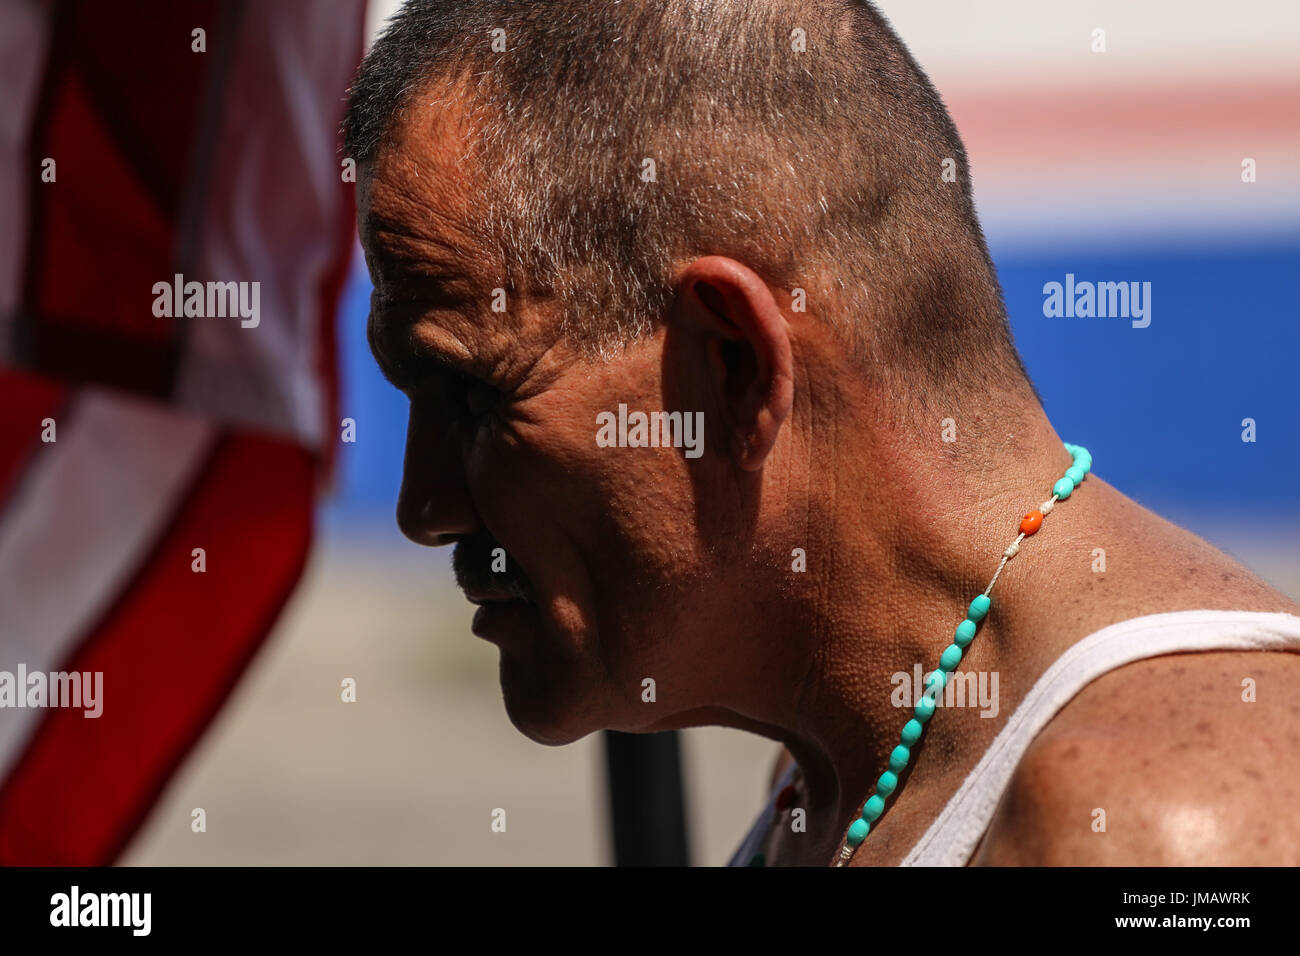 Tijuana, Baja California, Mexico. 16th July, 2017. ALEJANDRO GOMEZ, a deported U.S. Marine Corps veteran, speaks to American citizens visiting during a gathering outside the Deported Veterans Support House in Tijuana, Baja California, Mexico. Credit: Joel Angel Juarez/ZUMA Wire/Alamy Live News - Stock Image